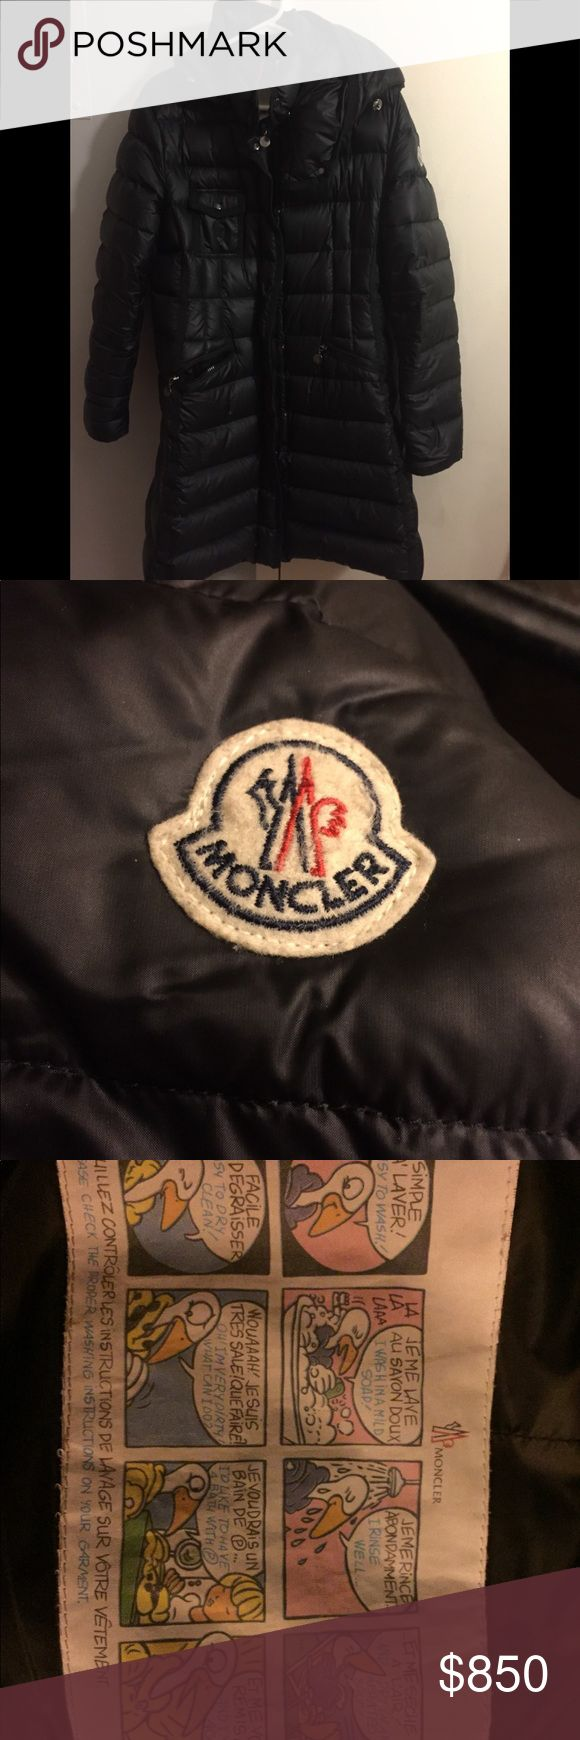 """Moncler Hermine Hooded Black Puffer Coat Moncler """"Hermine"""" long puffer coat 35"""" length (size 5).  In US, it's a 10-12. I lost weight so it's too big now - this coat is in EXCELLENT condition.  Purchased at Bloomingdales NYC end of last winter. Details: Hidden two-way zip closure with outer snap closure. Snap-off hood with elastic drawcord. Front zip pockets; snap-flap chest pocket. Moncler logo on left sleeve. Lined, with 90% down, 10% feather fill. 100% polyamide (nylon). Dry clean or hand…"""